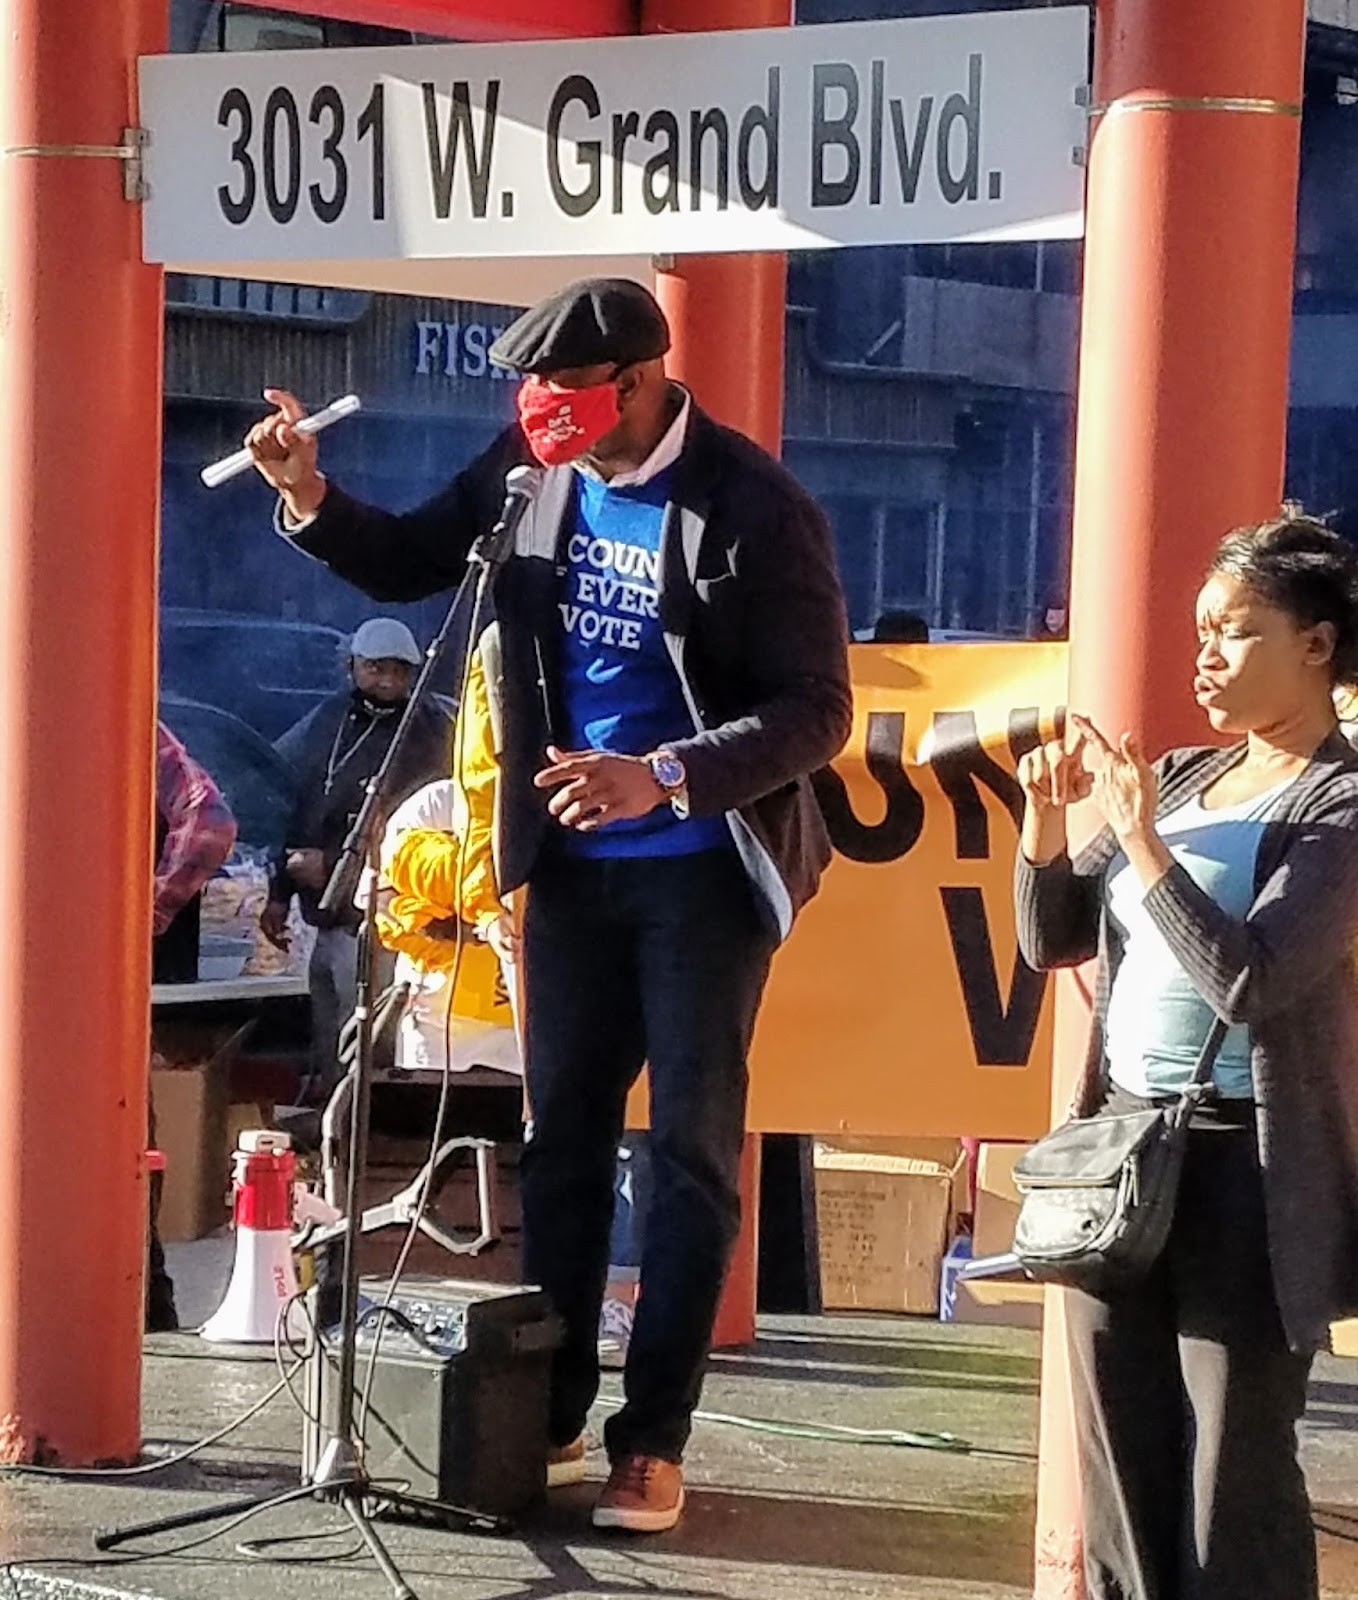 DFT President Terrence Martin speaking at the 11/4 Count Every Vote rally in Detroit.